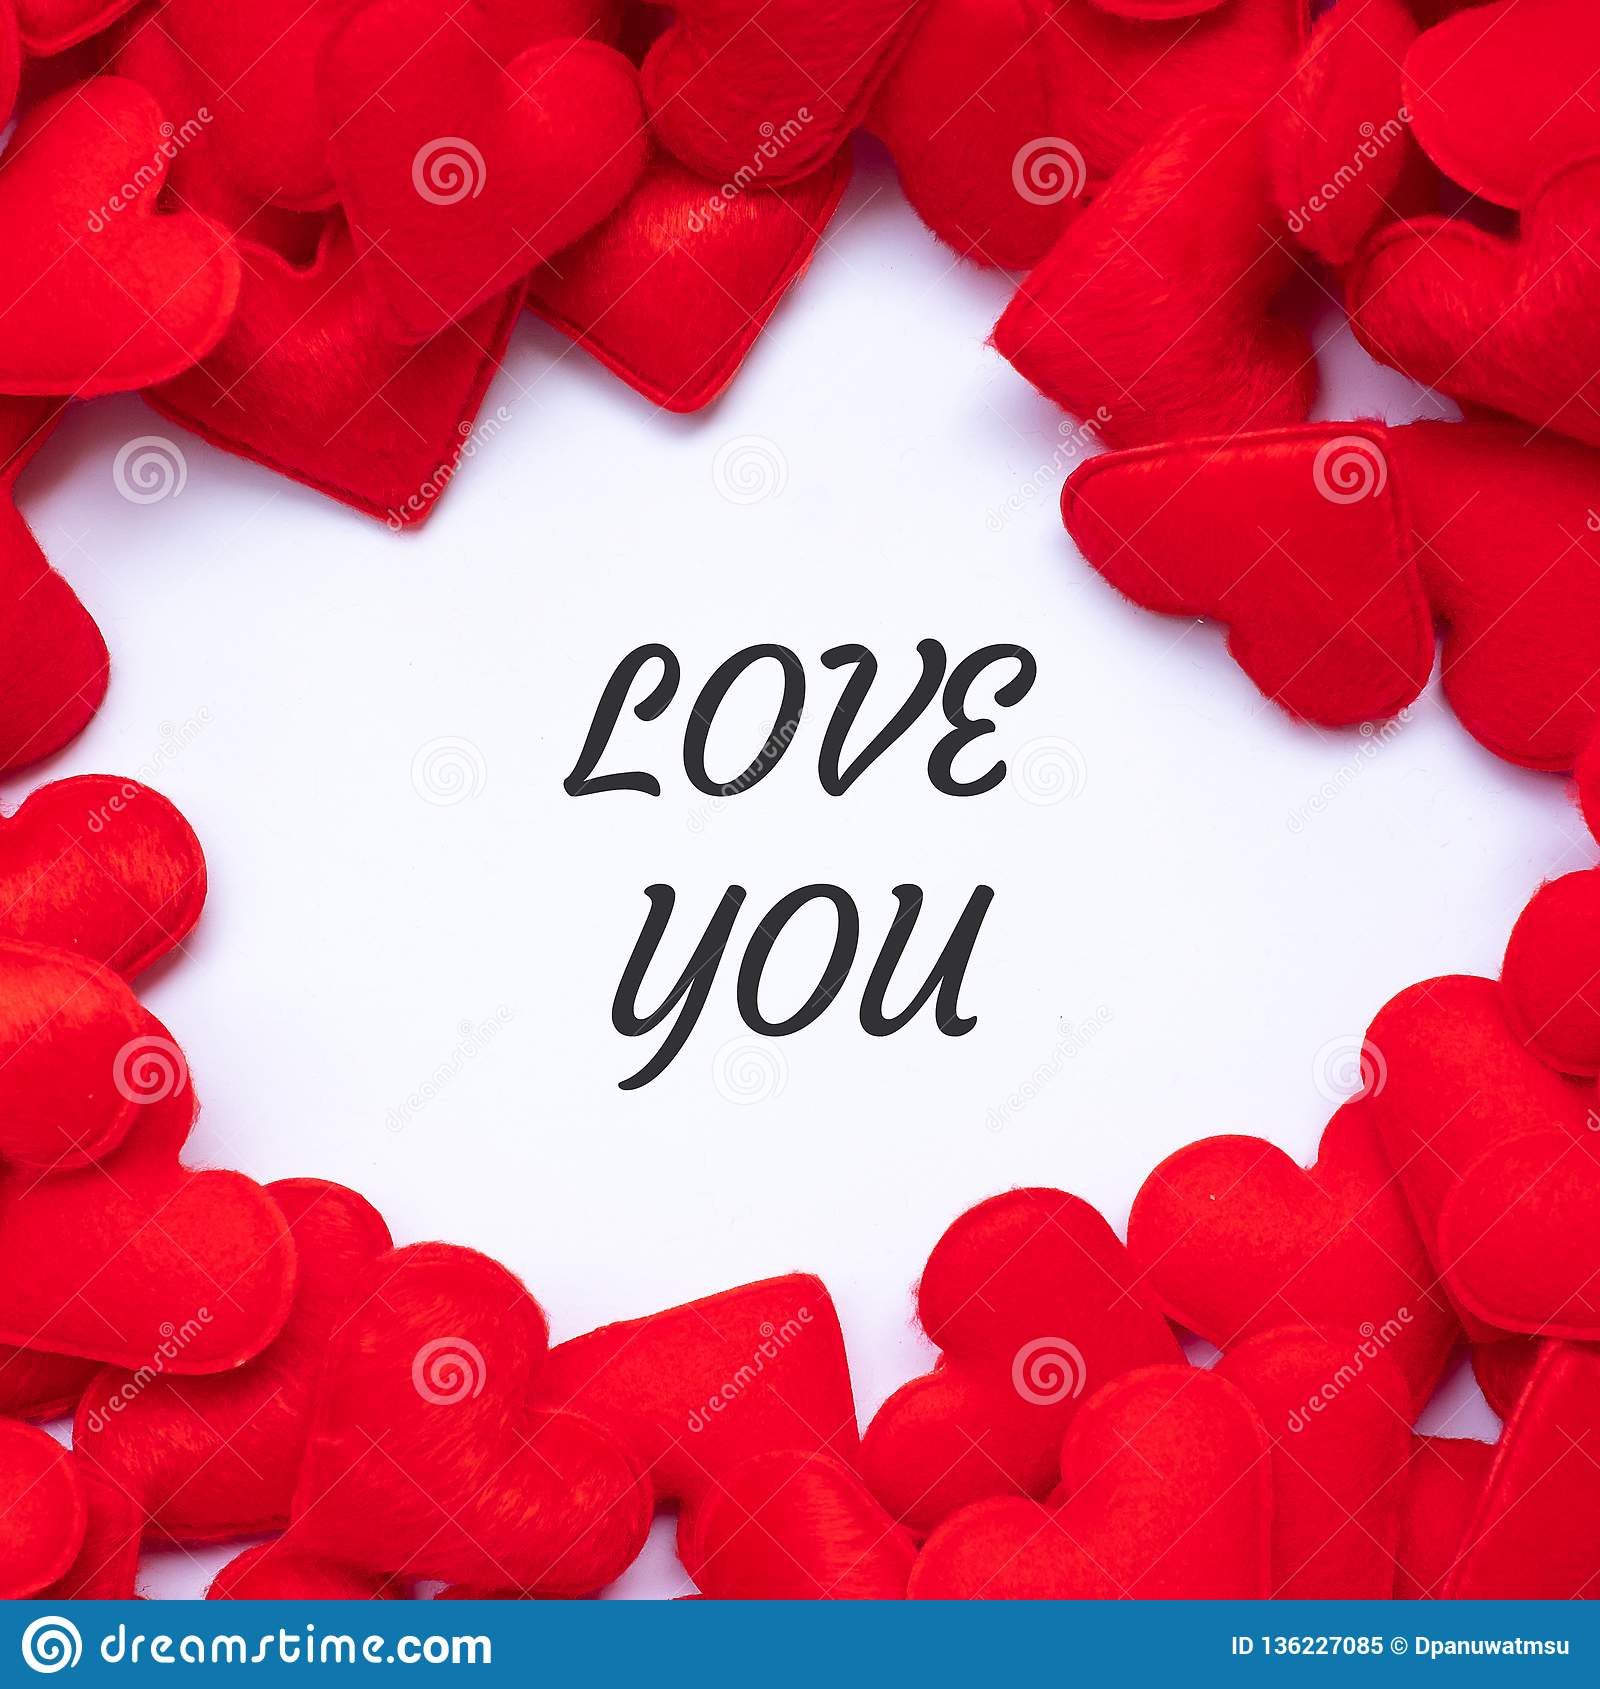 LOVE YOU Word With Red Heart Shape Decoration Background